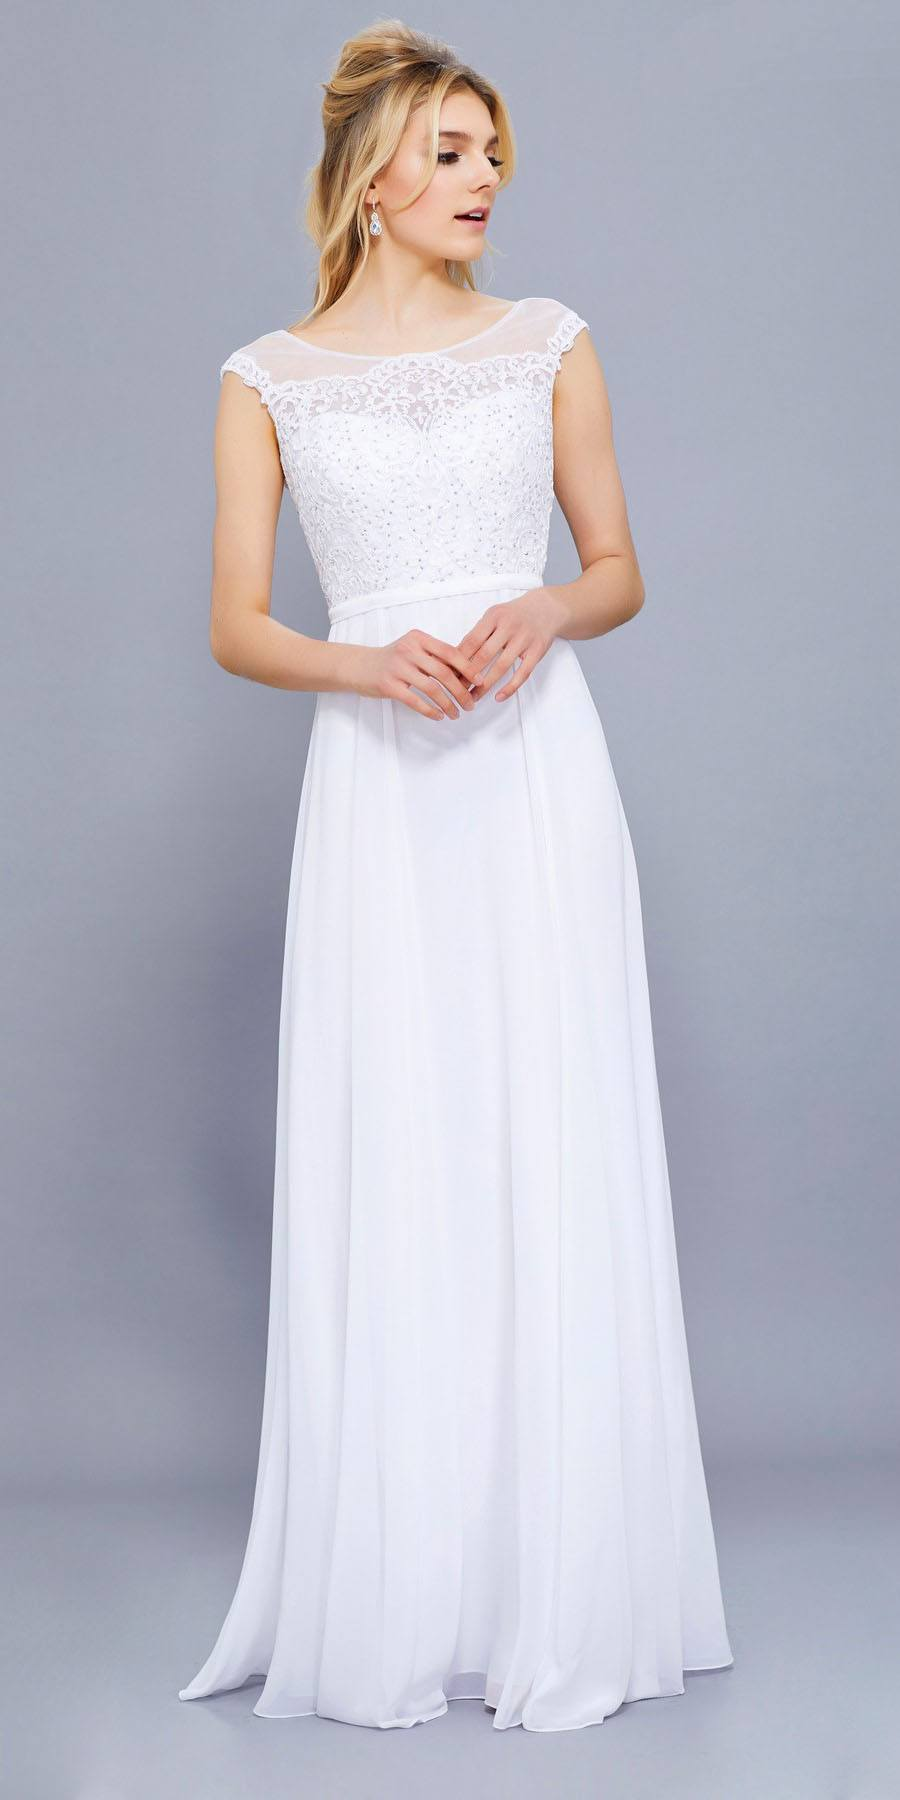 836783936c White Cap Sleeves Lace Bodice Chiffon A-line Long Formal Dress. Tap to  expand